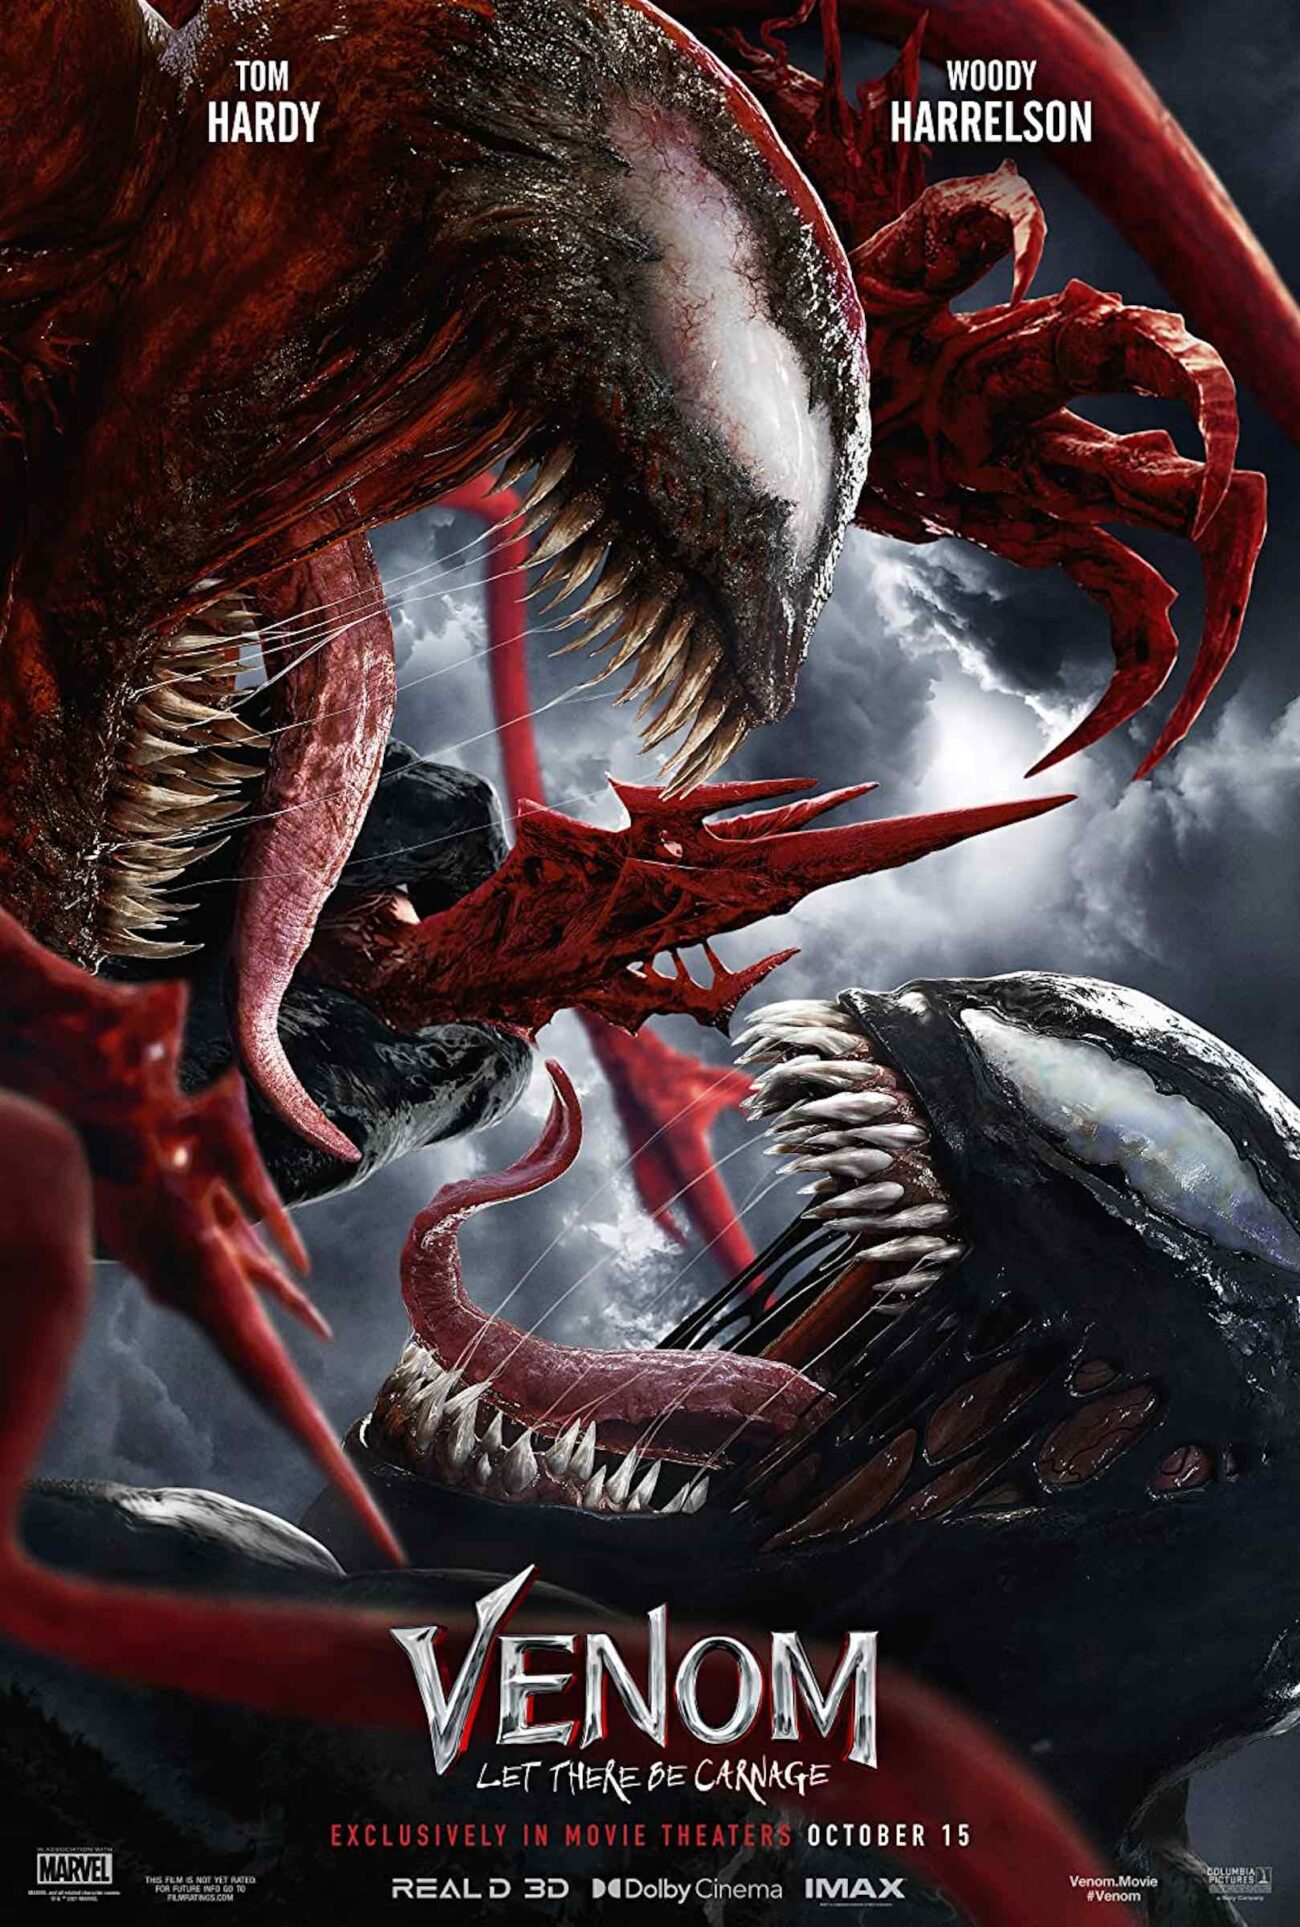 Many have hinted that Spider-Man might be joining up with Venom in upcoming movies. Get your web shooters ready as we dive into the possible crossovers!